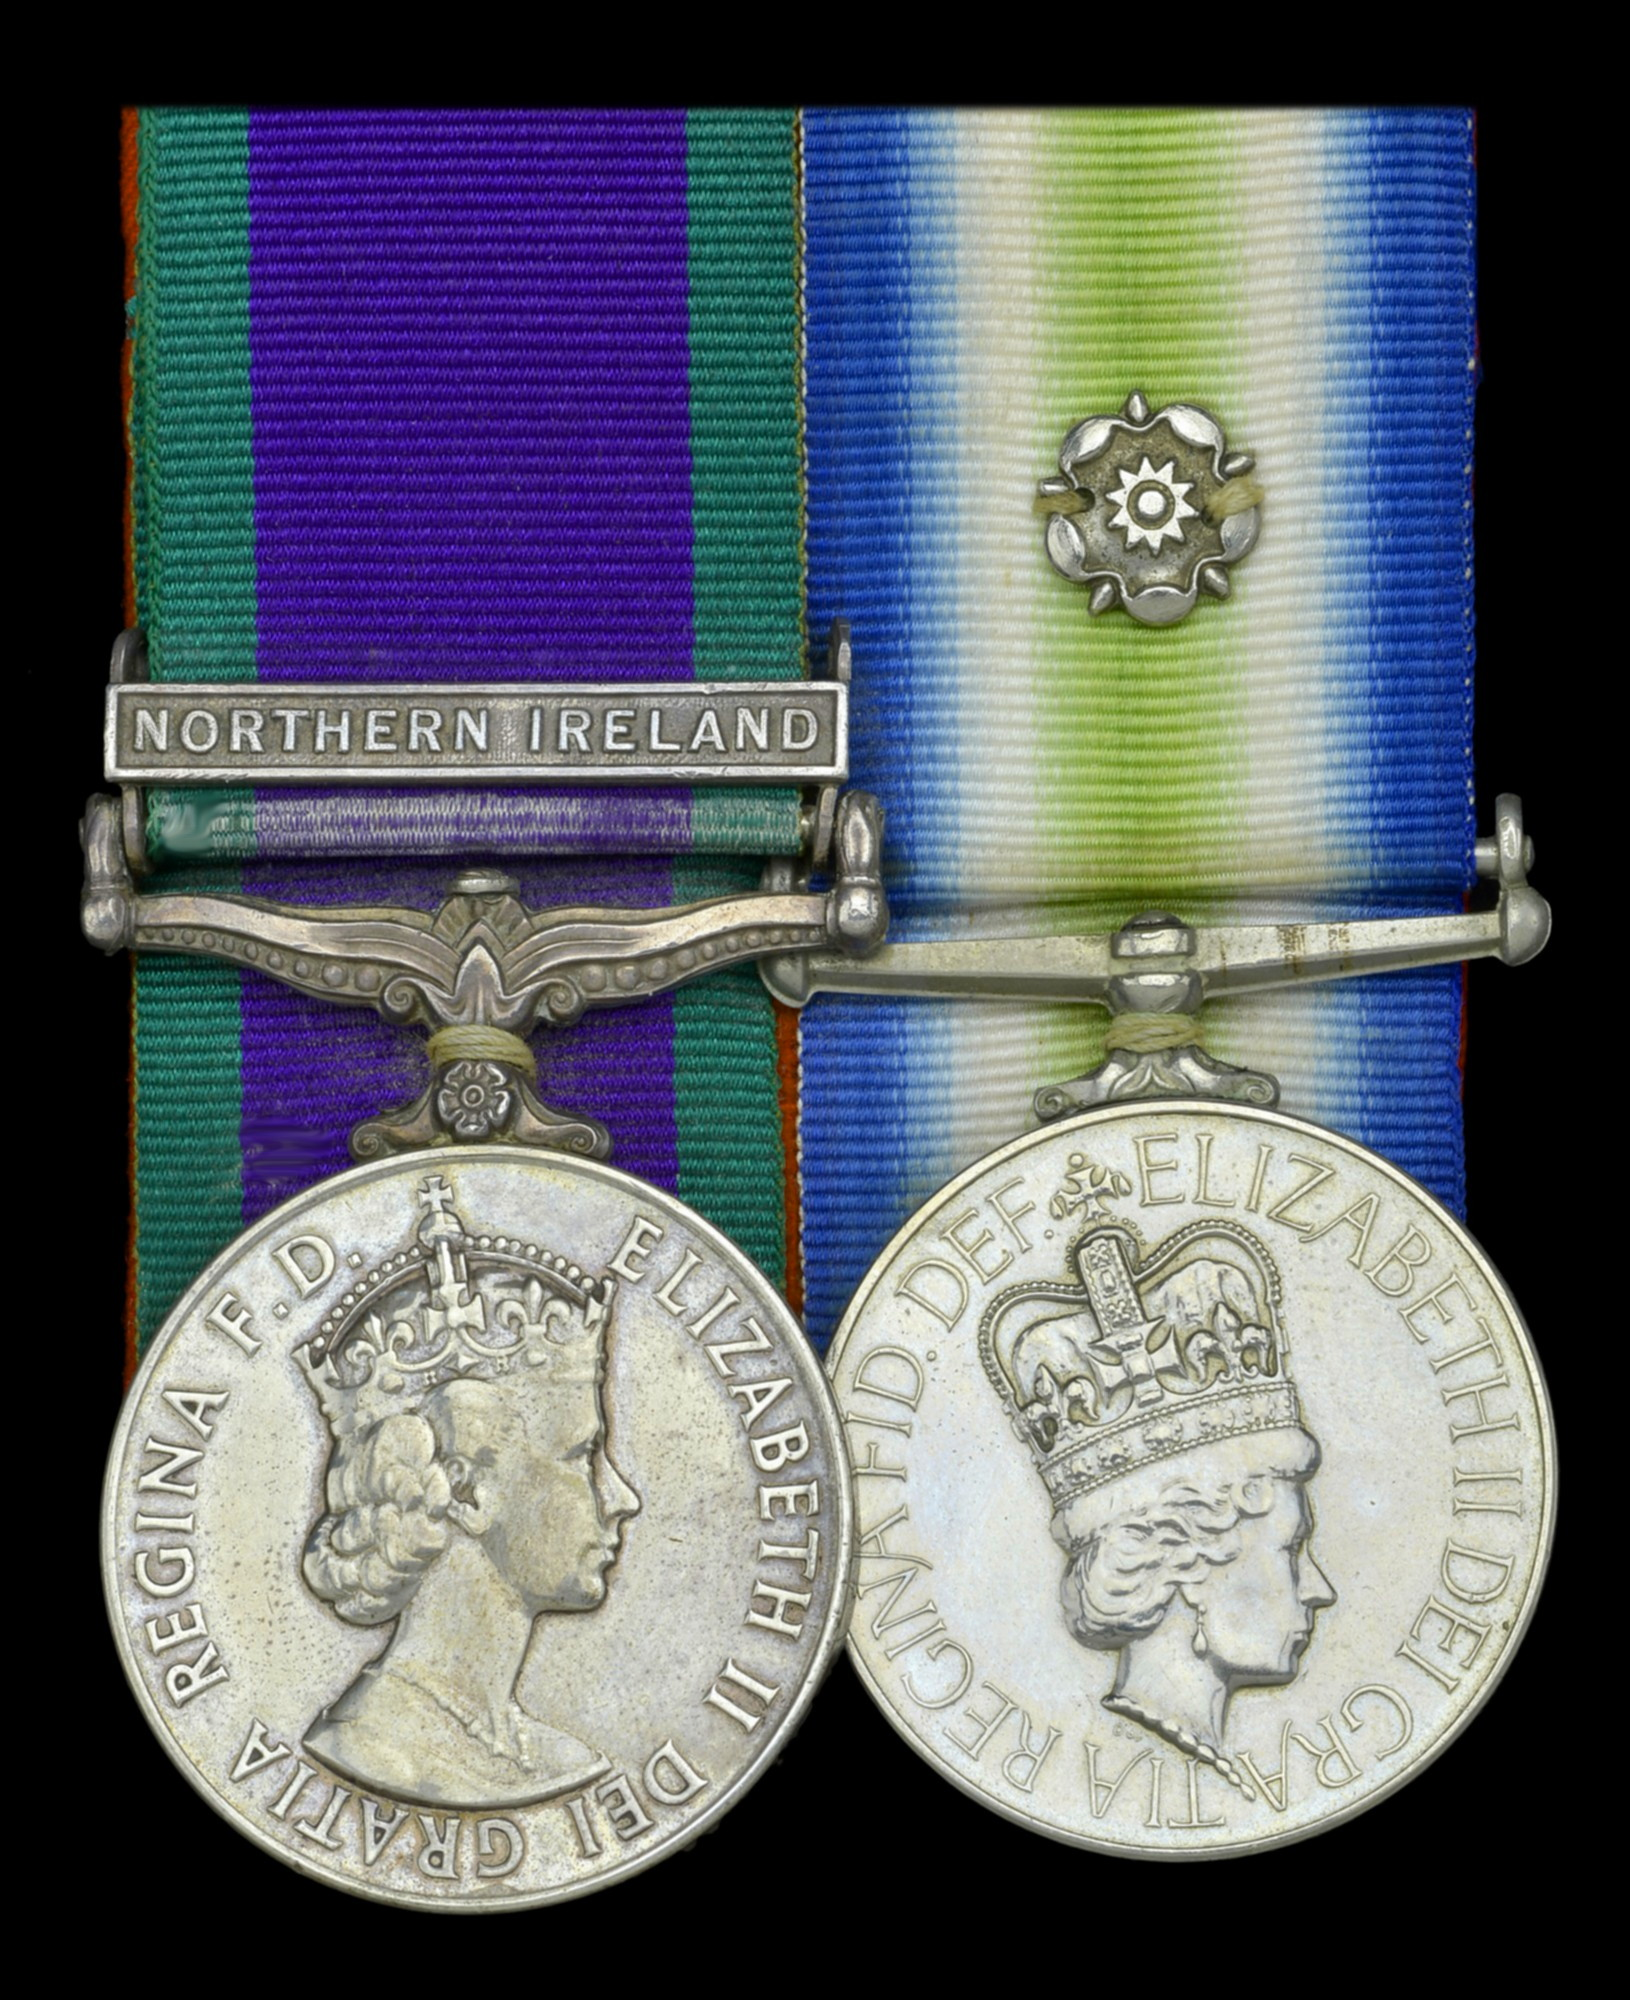 The South Atlantic medal with the campaign medal for Northern Ireland - a frequently seen combination